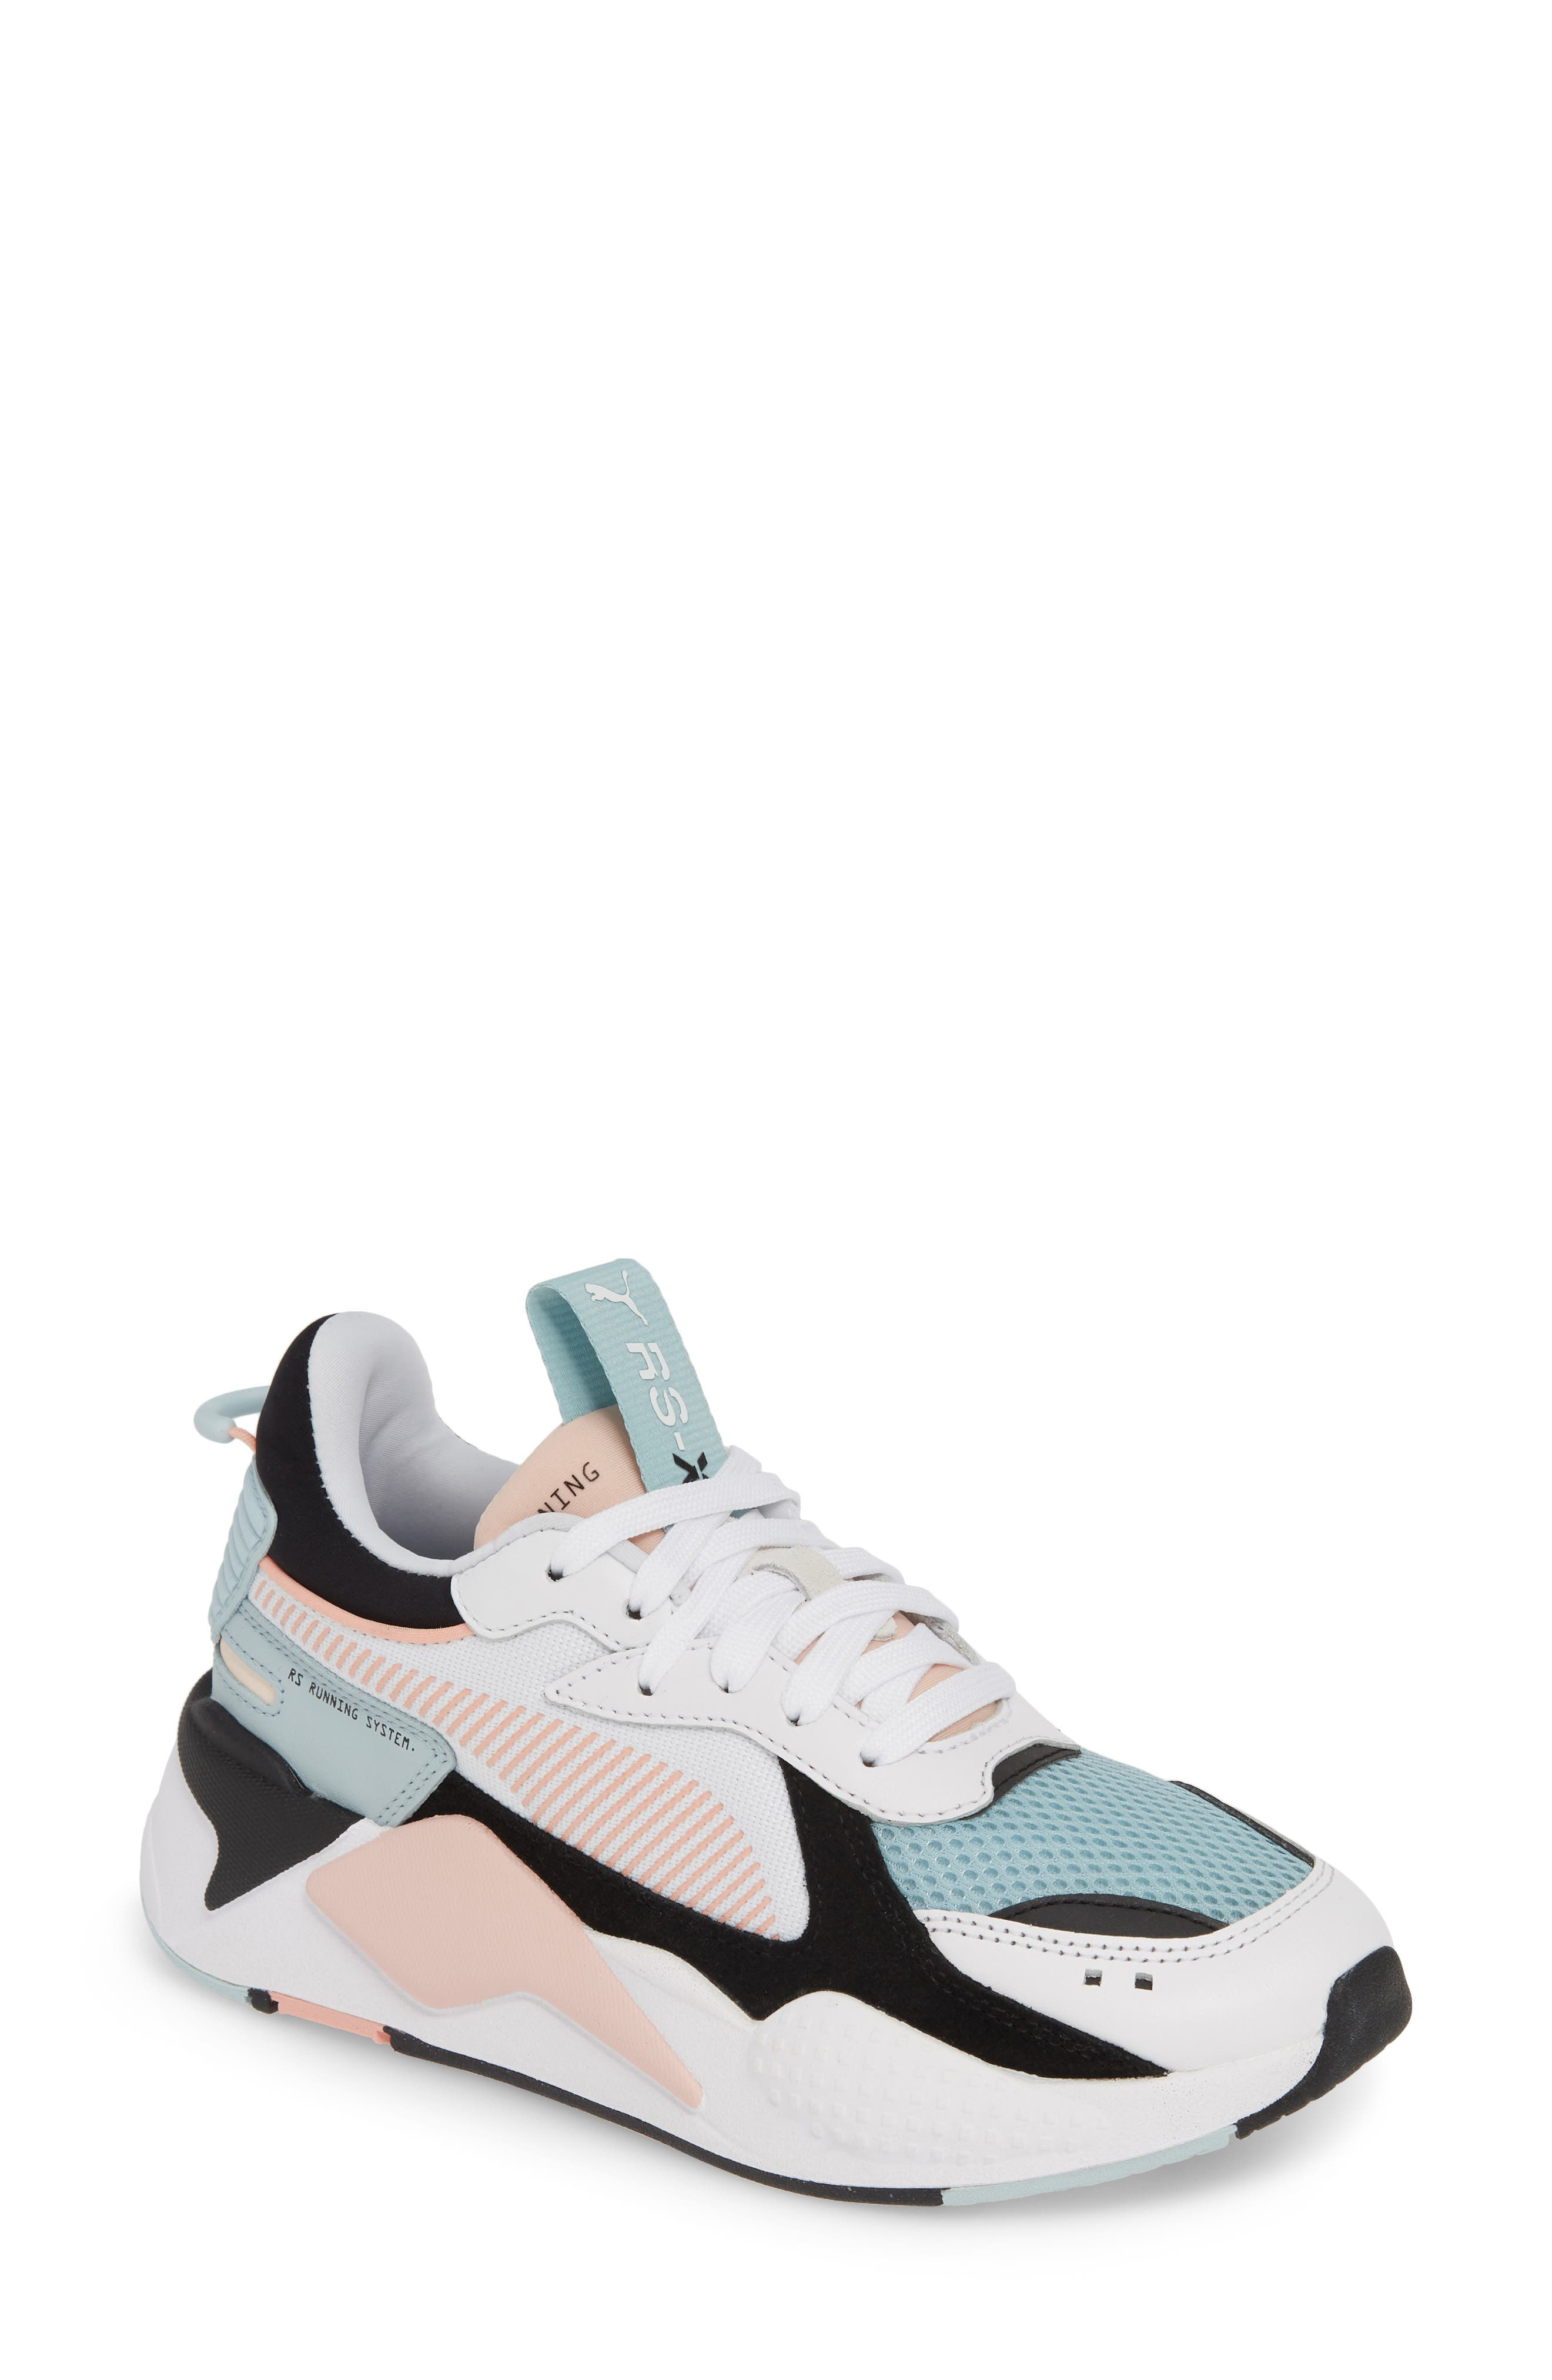 PUMA, RS-X Reinvention Sneaker, Main thumbnail 1, color, 100